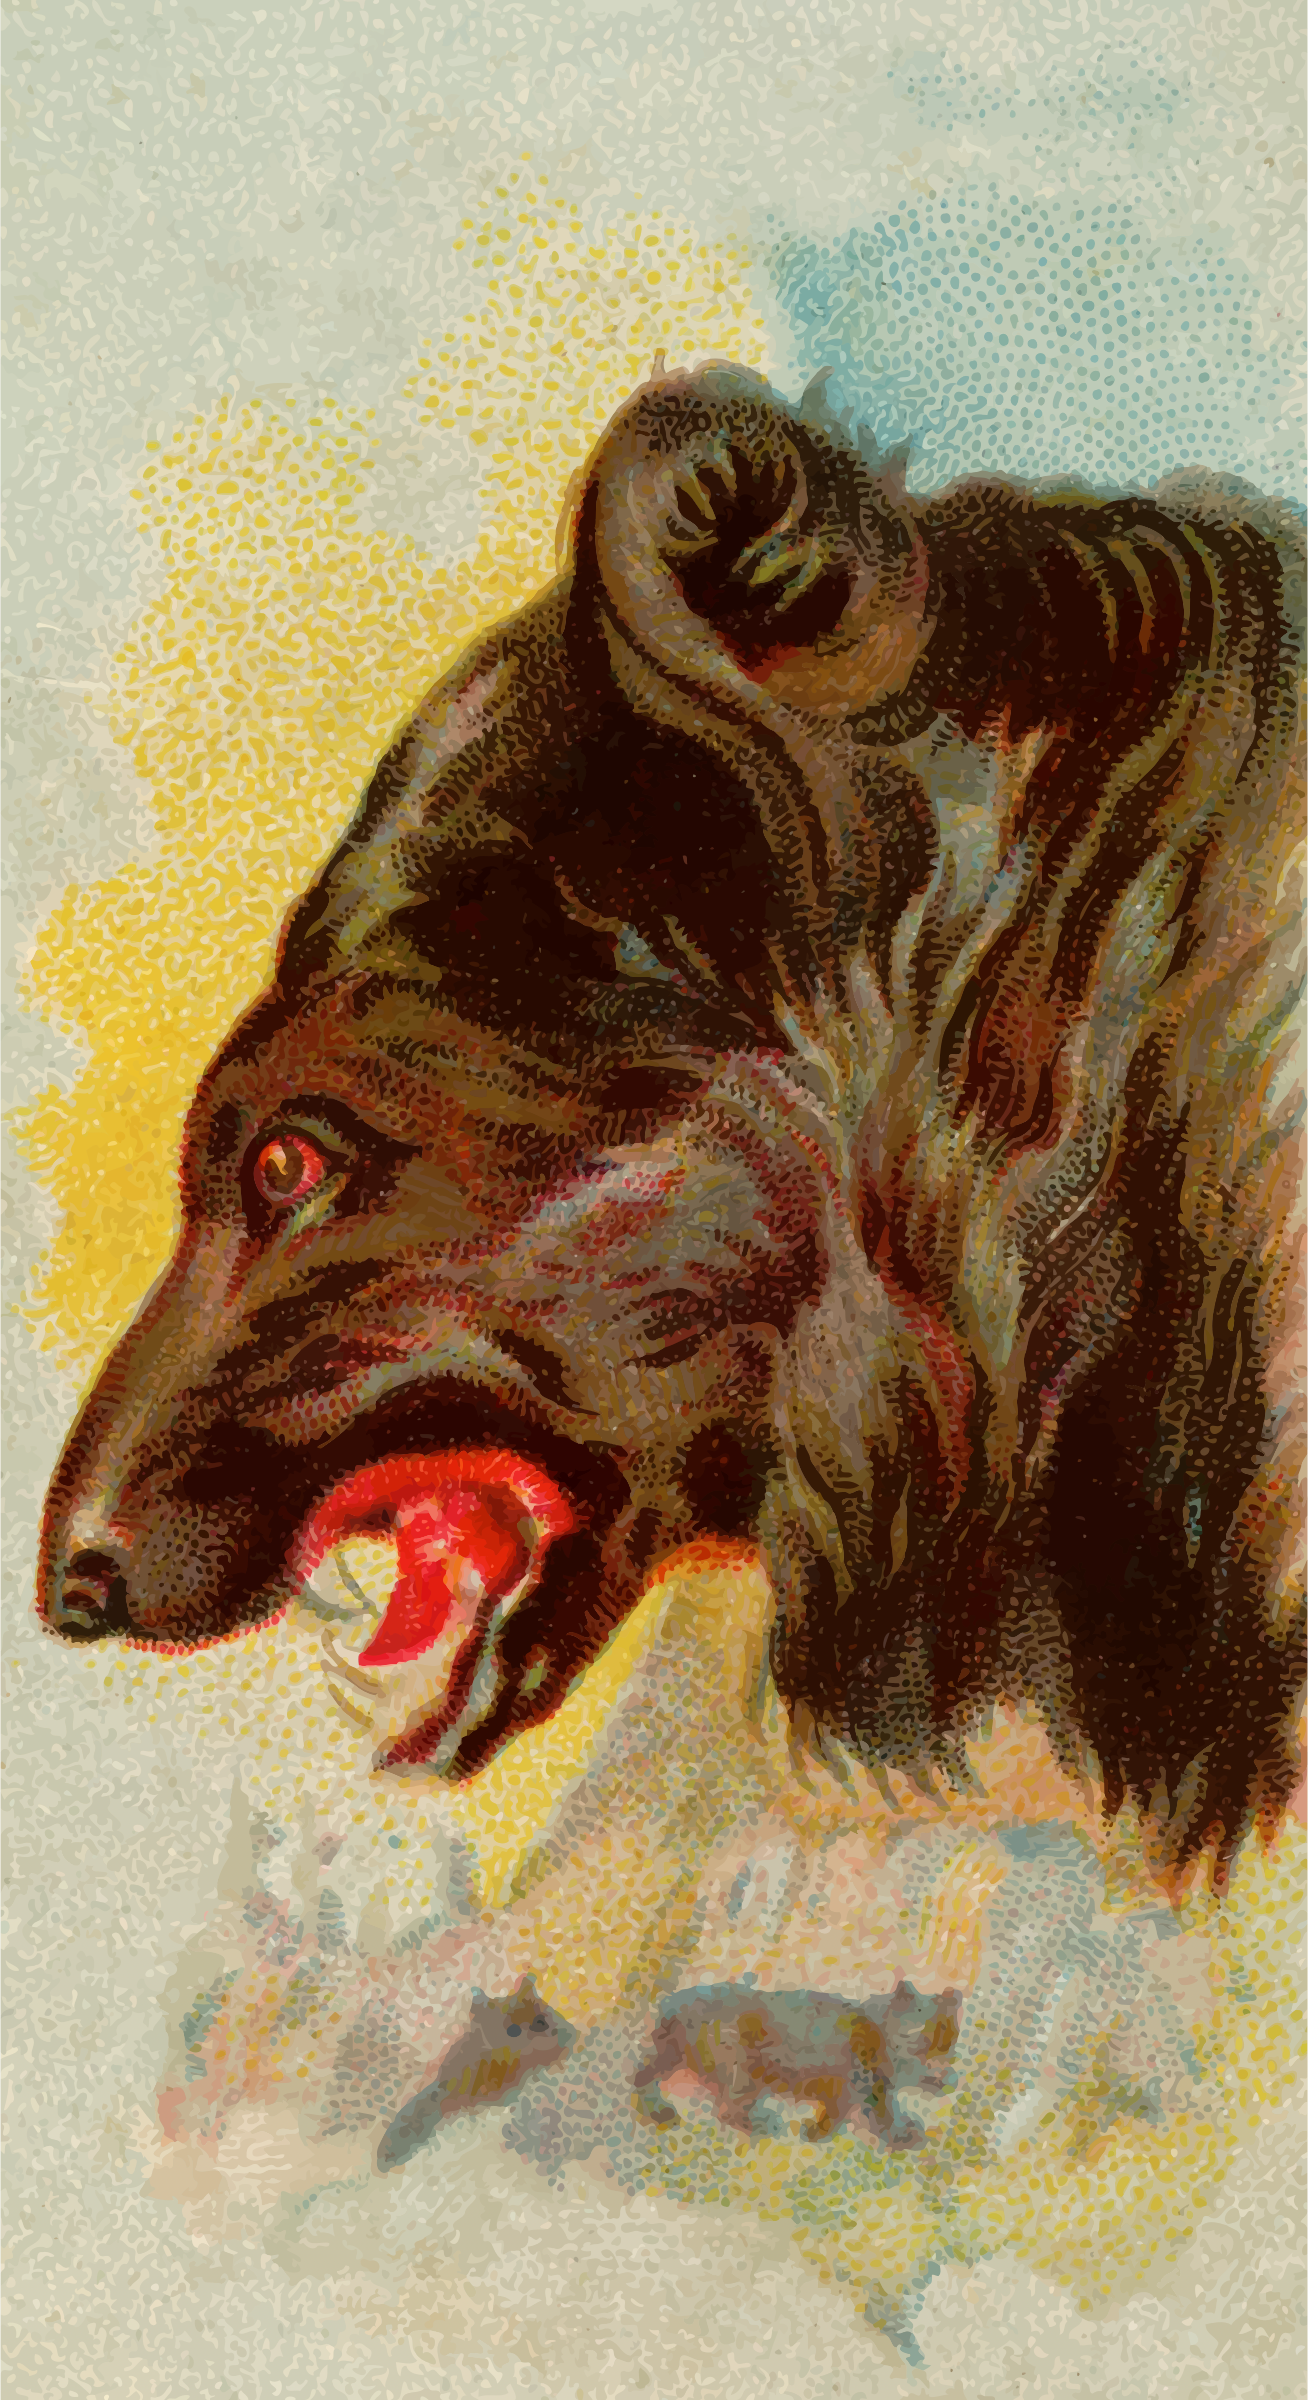 Cigarette card - Black bear by Firkin